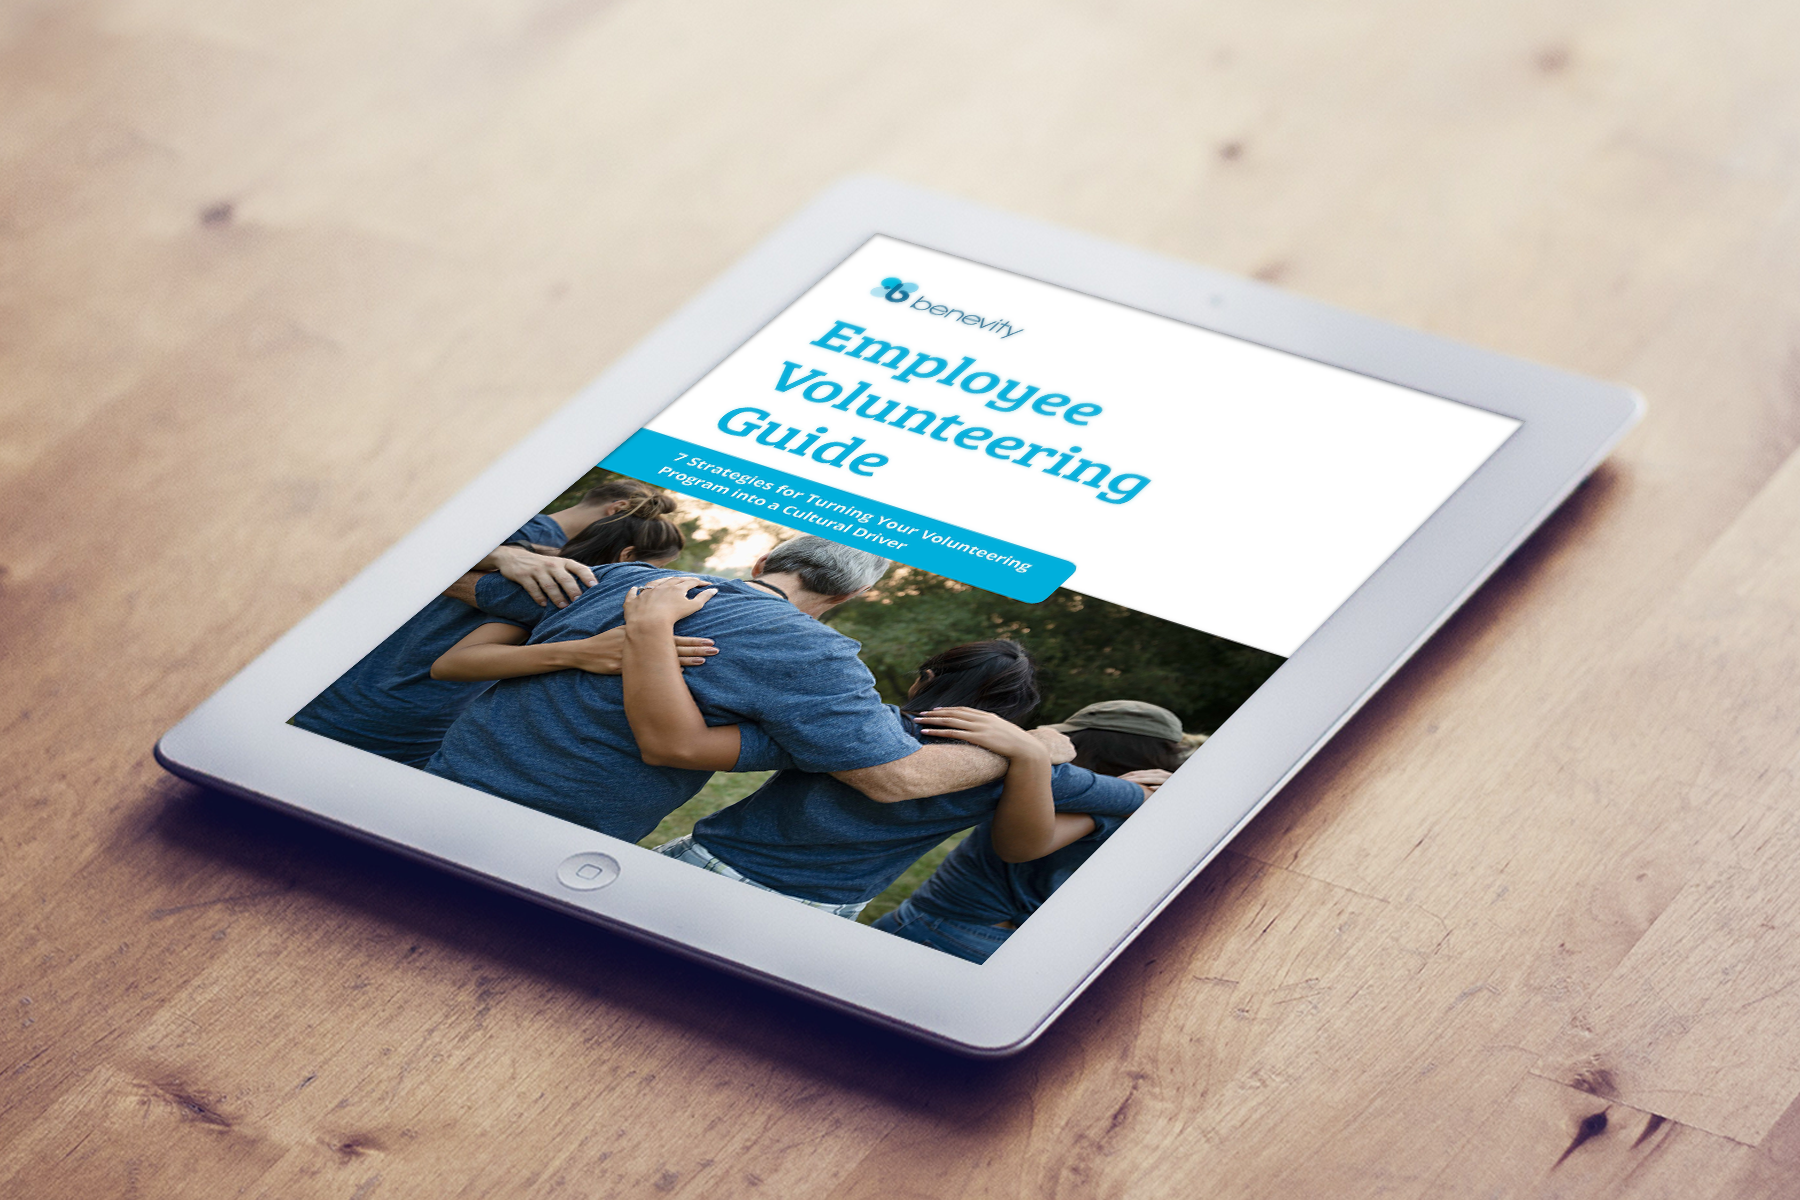 Benevity: Employee Volunteering Guide 2019 - 7 Strategies for Turning Your Program into a Cultural Driver: An ebook guide created for the Benevity blog and content marketing that highlights what leading corporate volunteer programs have in common; their flexibility and inclusivity. As well it includes strategies you can implement to drive more social impact, which leads to more engagement and, ultimately, a purpose-driven culture where people are compelled to give year-round.